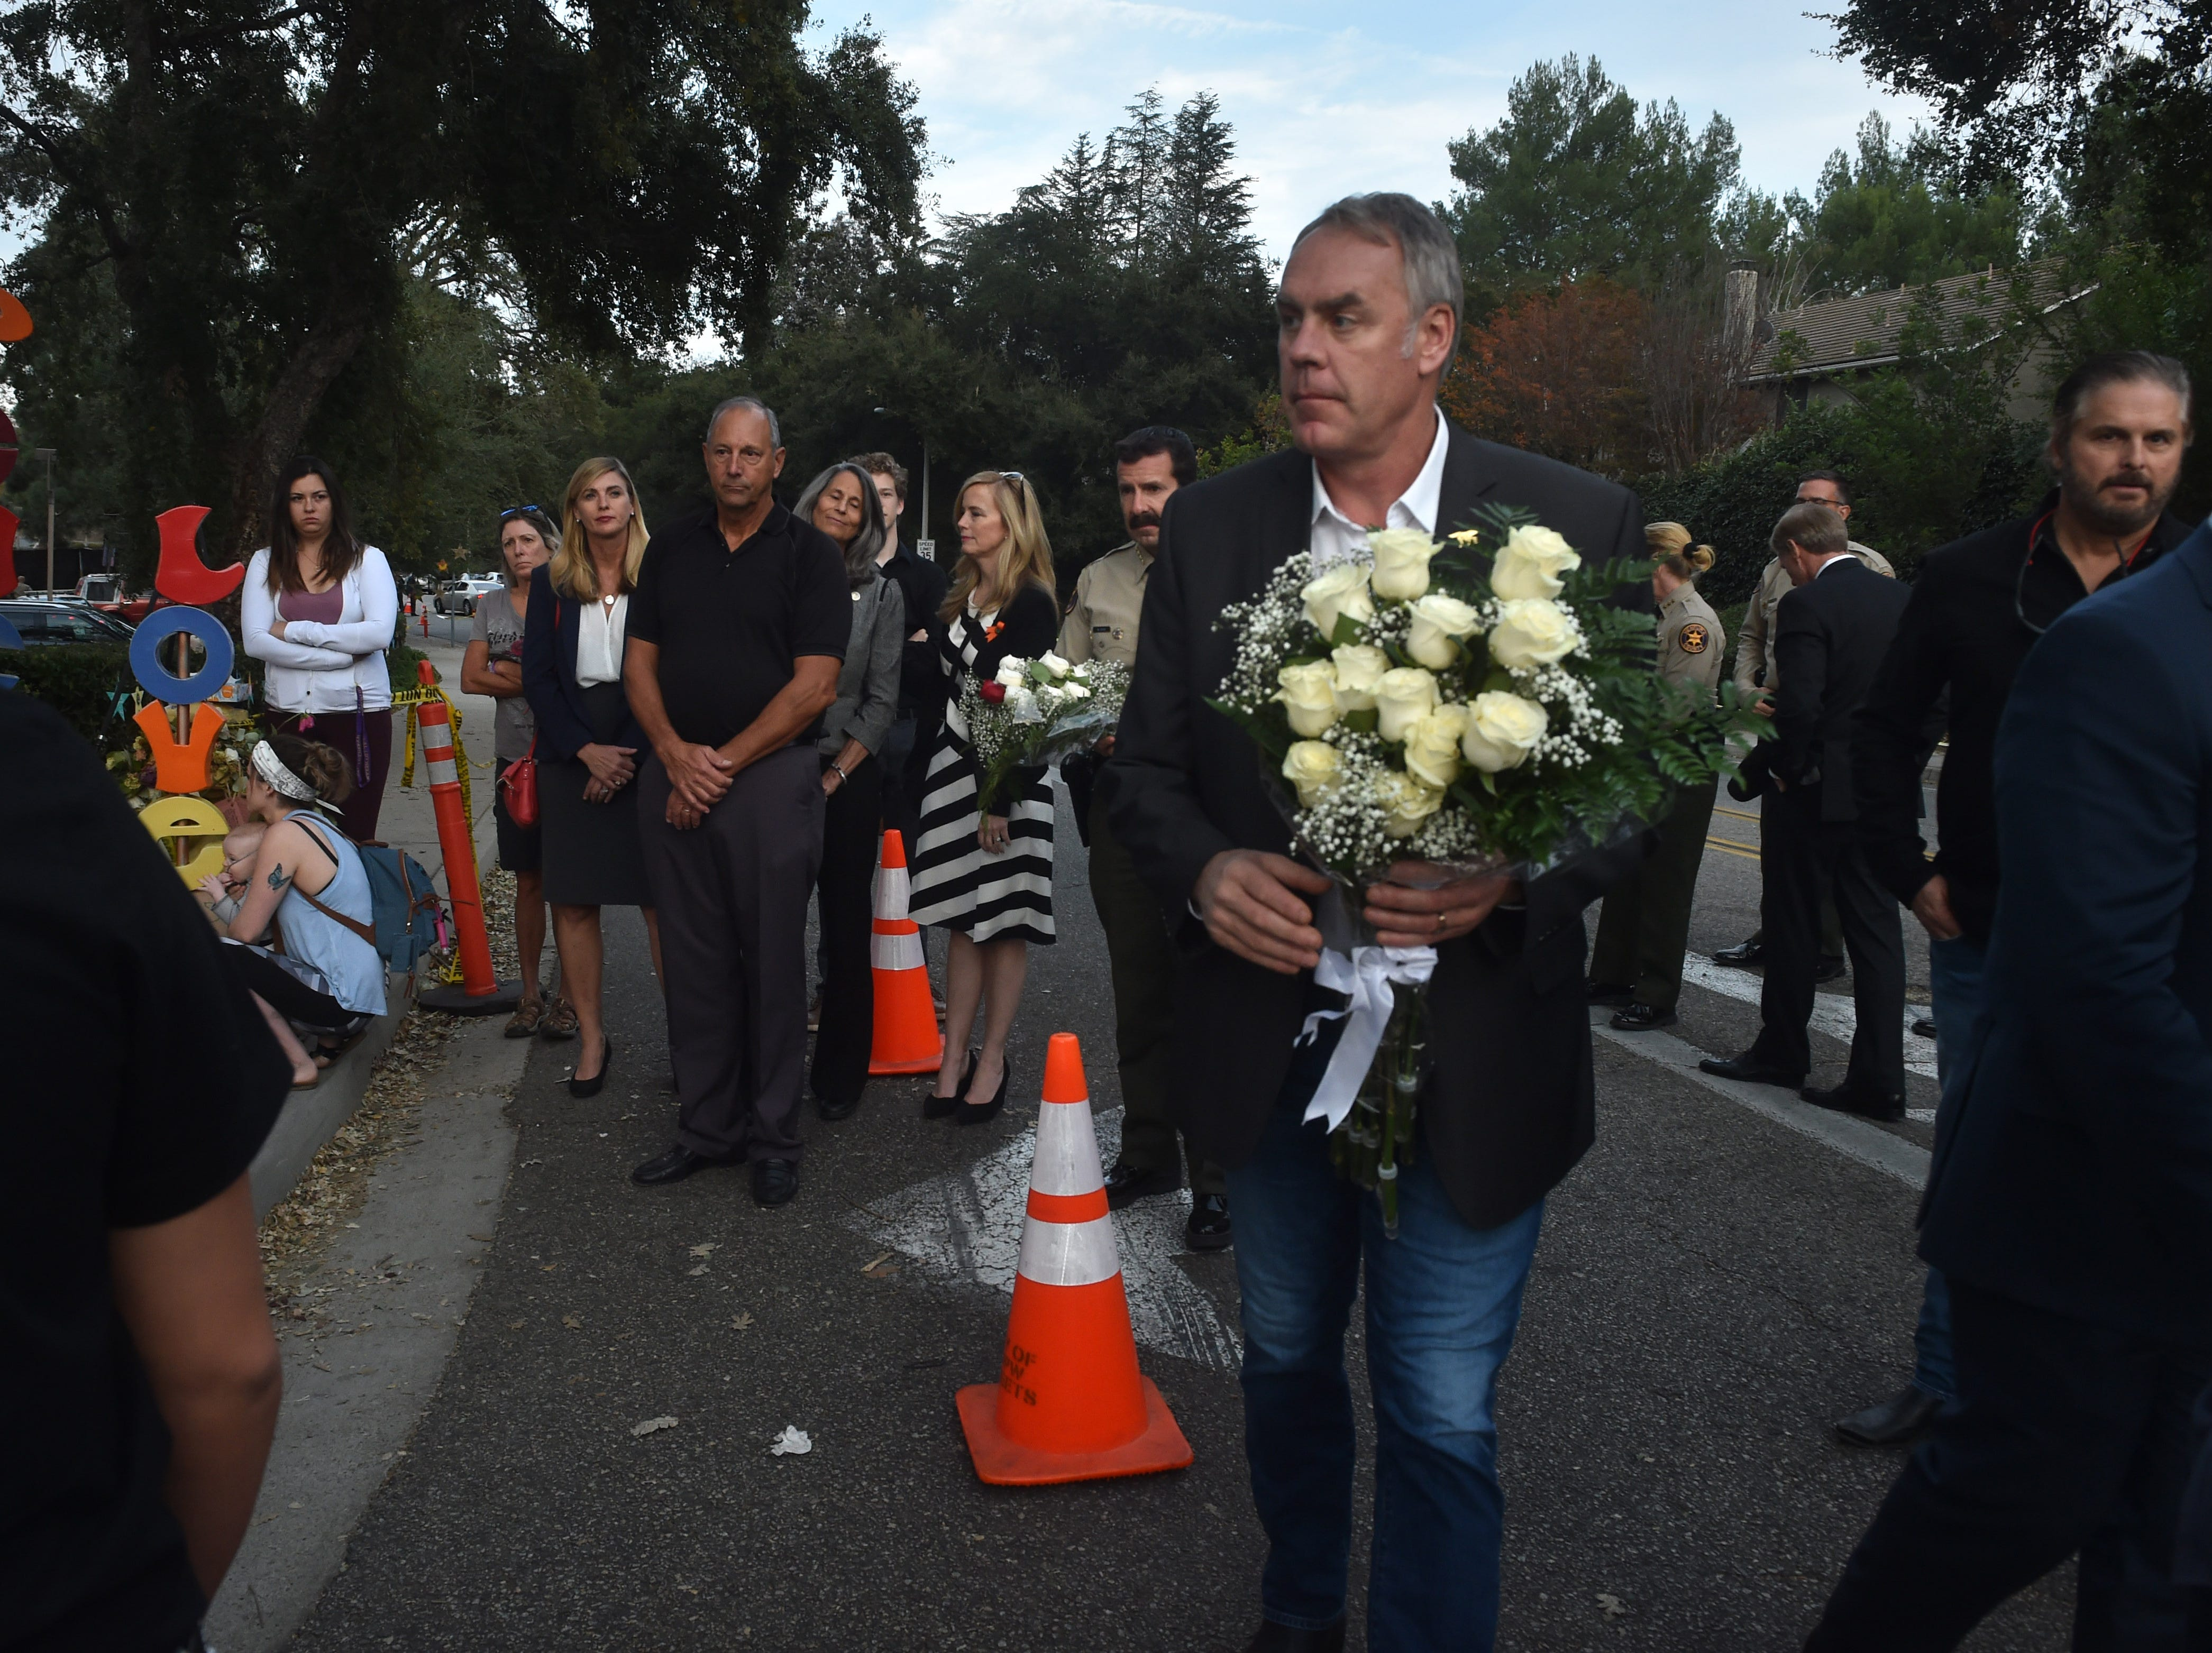 U.S. Interior Secretary Ryan Zinke on Thursday delivers flowers to a memorial wall near the Borderline Bar & Grill in Thousand Oaks, where 12 people were killed by a gunman who then turned the gun on himself Nov. 7. Zinke was in Ventura County to see the damage caused by the Woolsey and Hill fires, which started the day after the shootings.